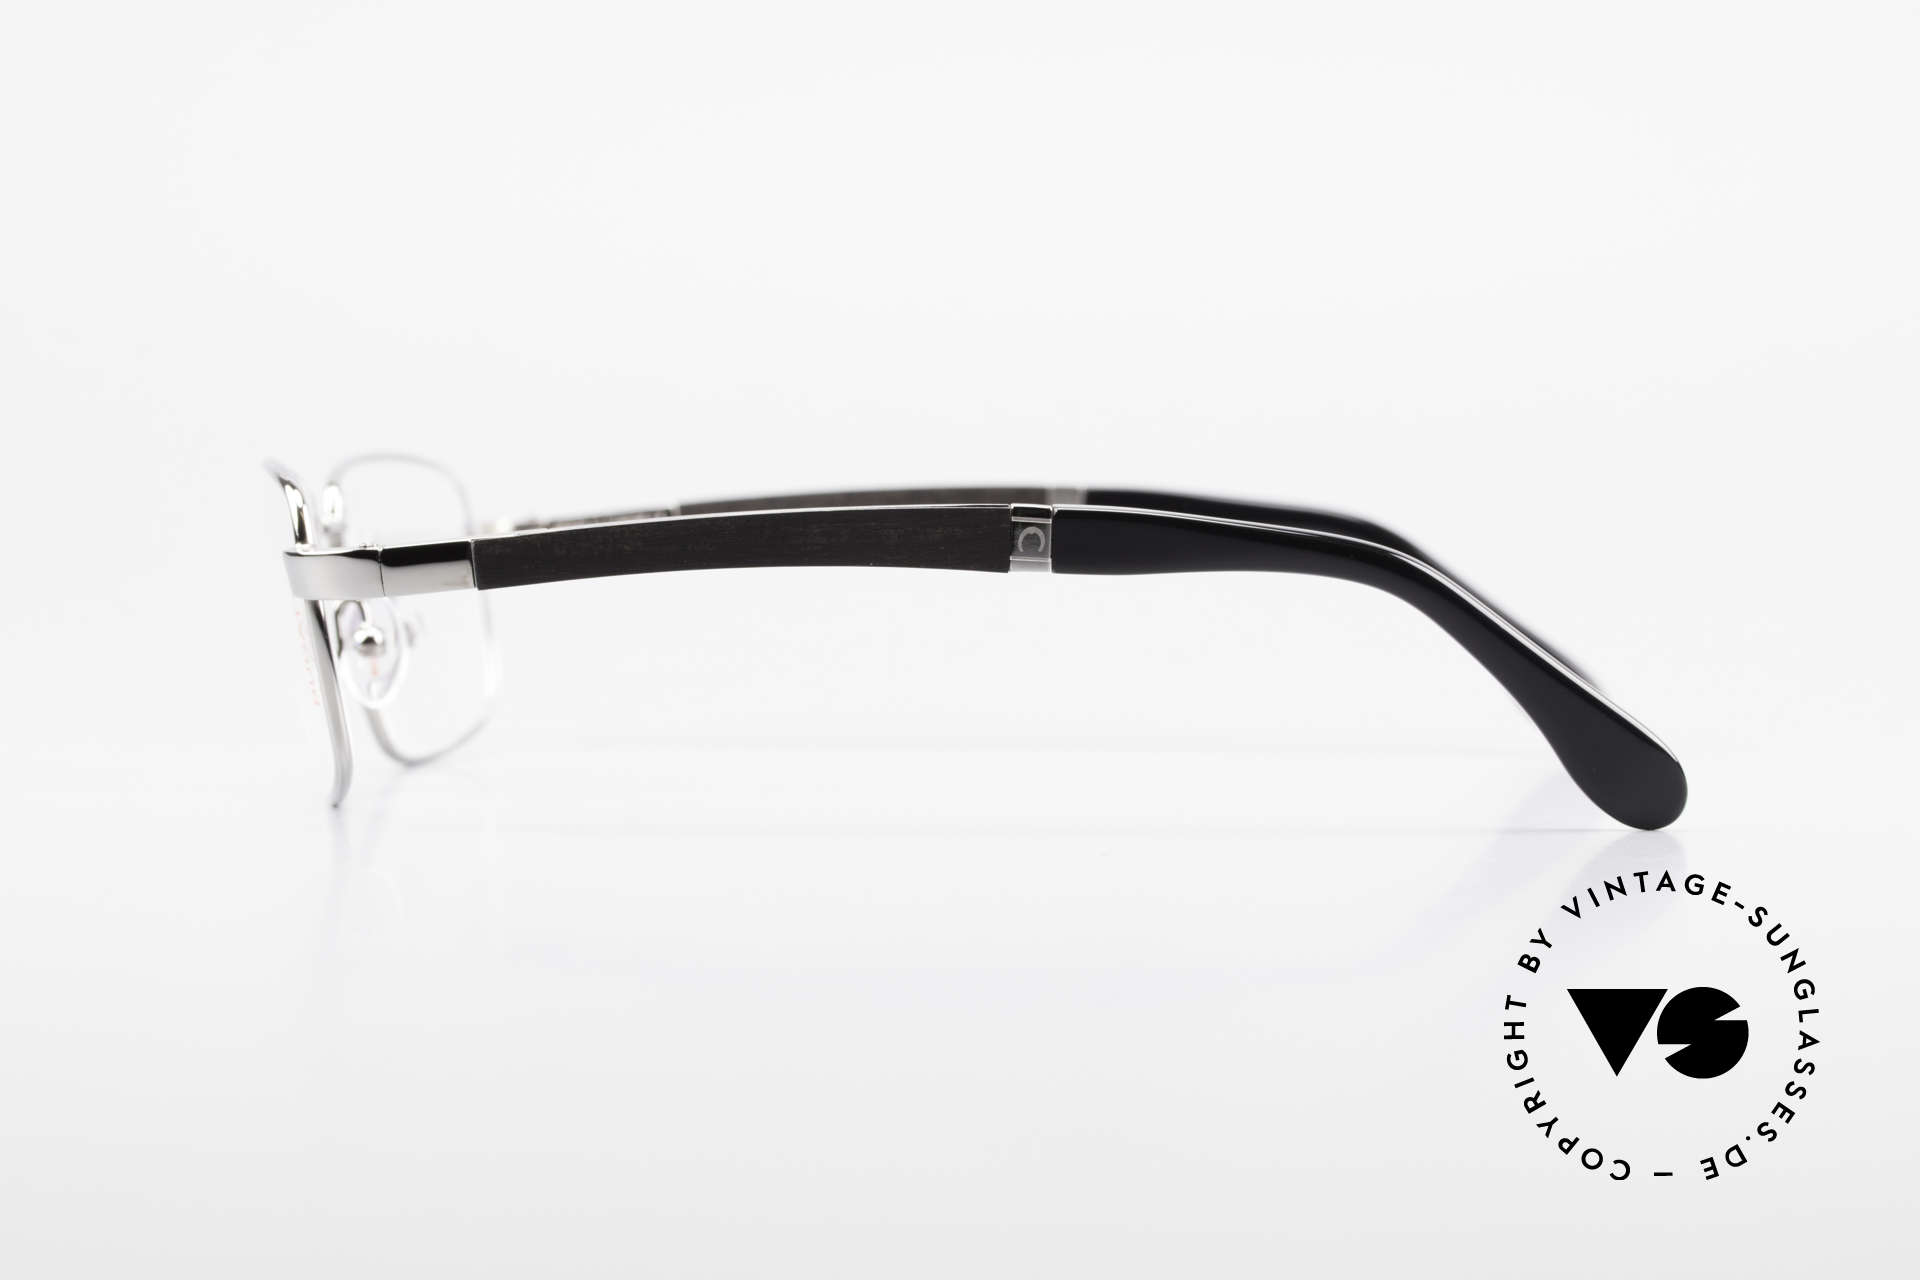 Bugatti 548 Ebenholz Ruthenium Brille M, flexible Federscharniere für eine optimale Passform, Passend für Herren